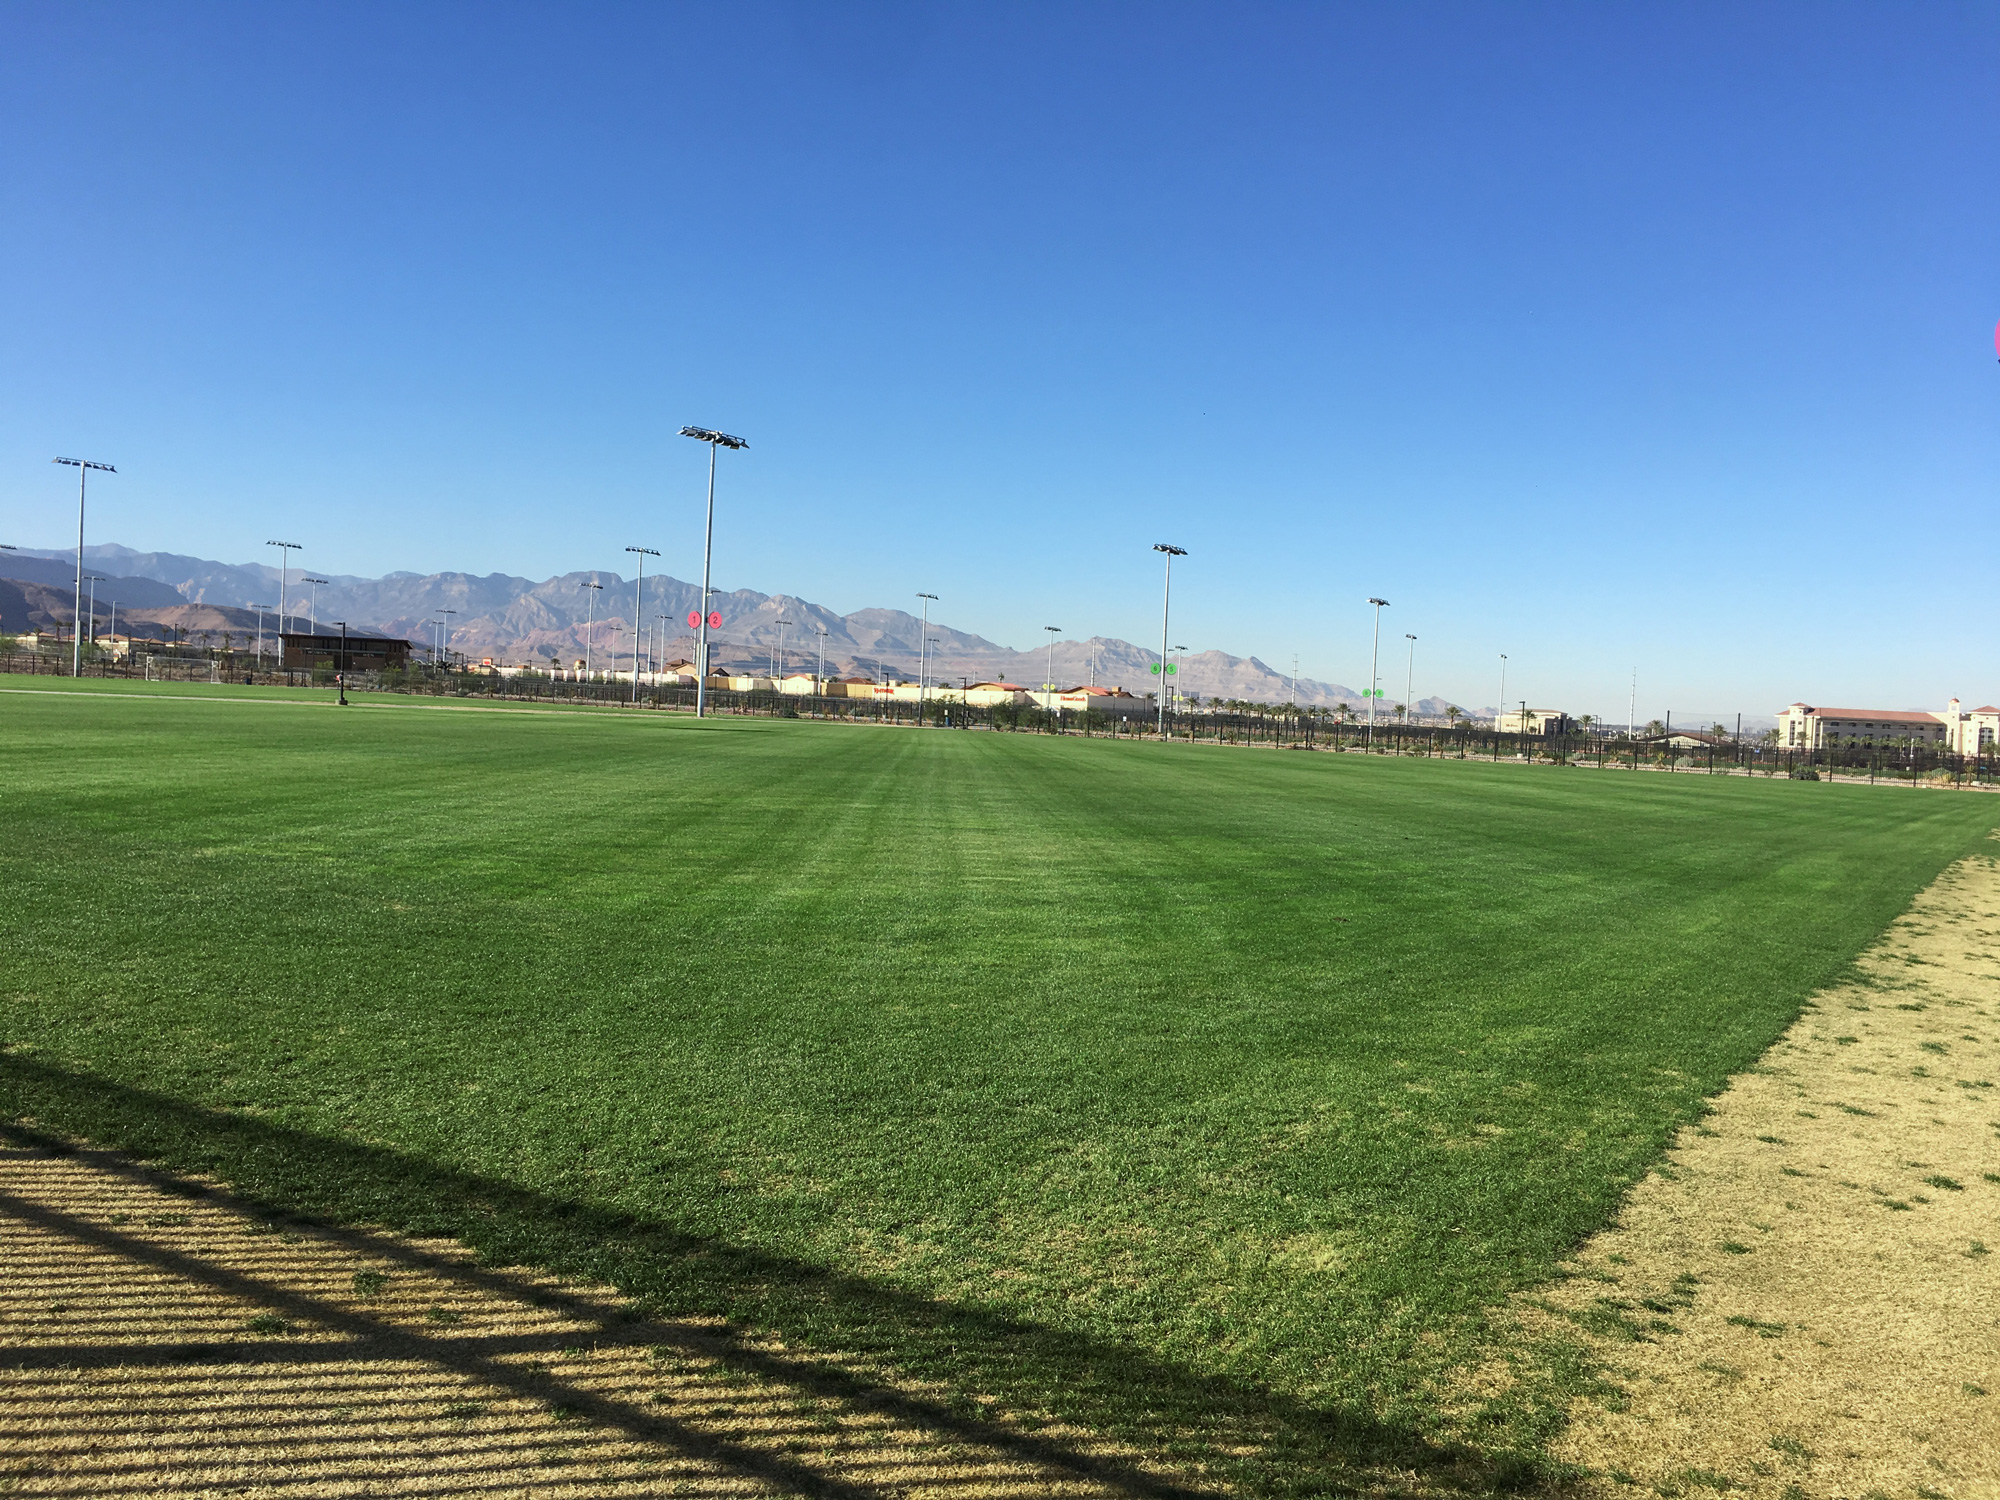 Gro-Power Used for 16-Field Soccer Complex